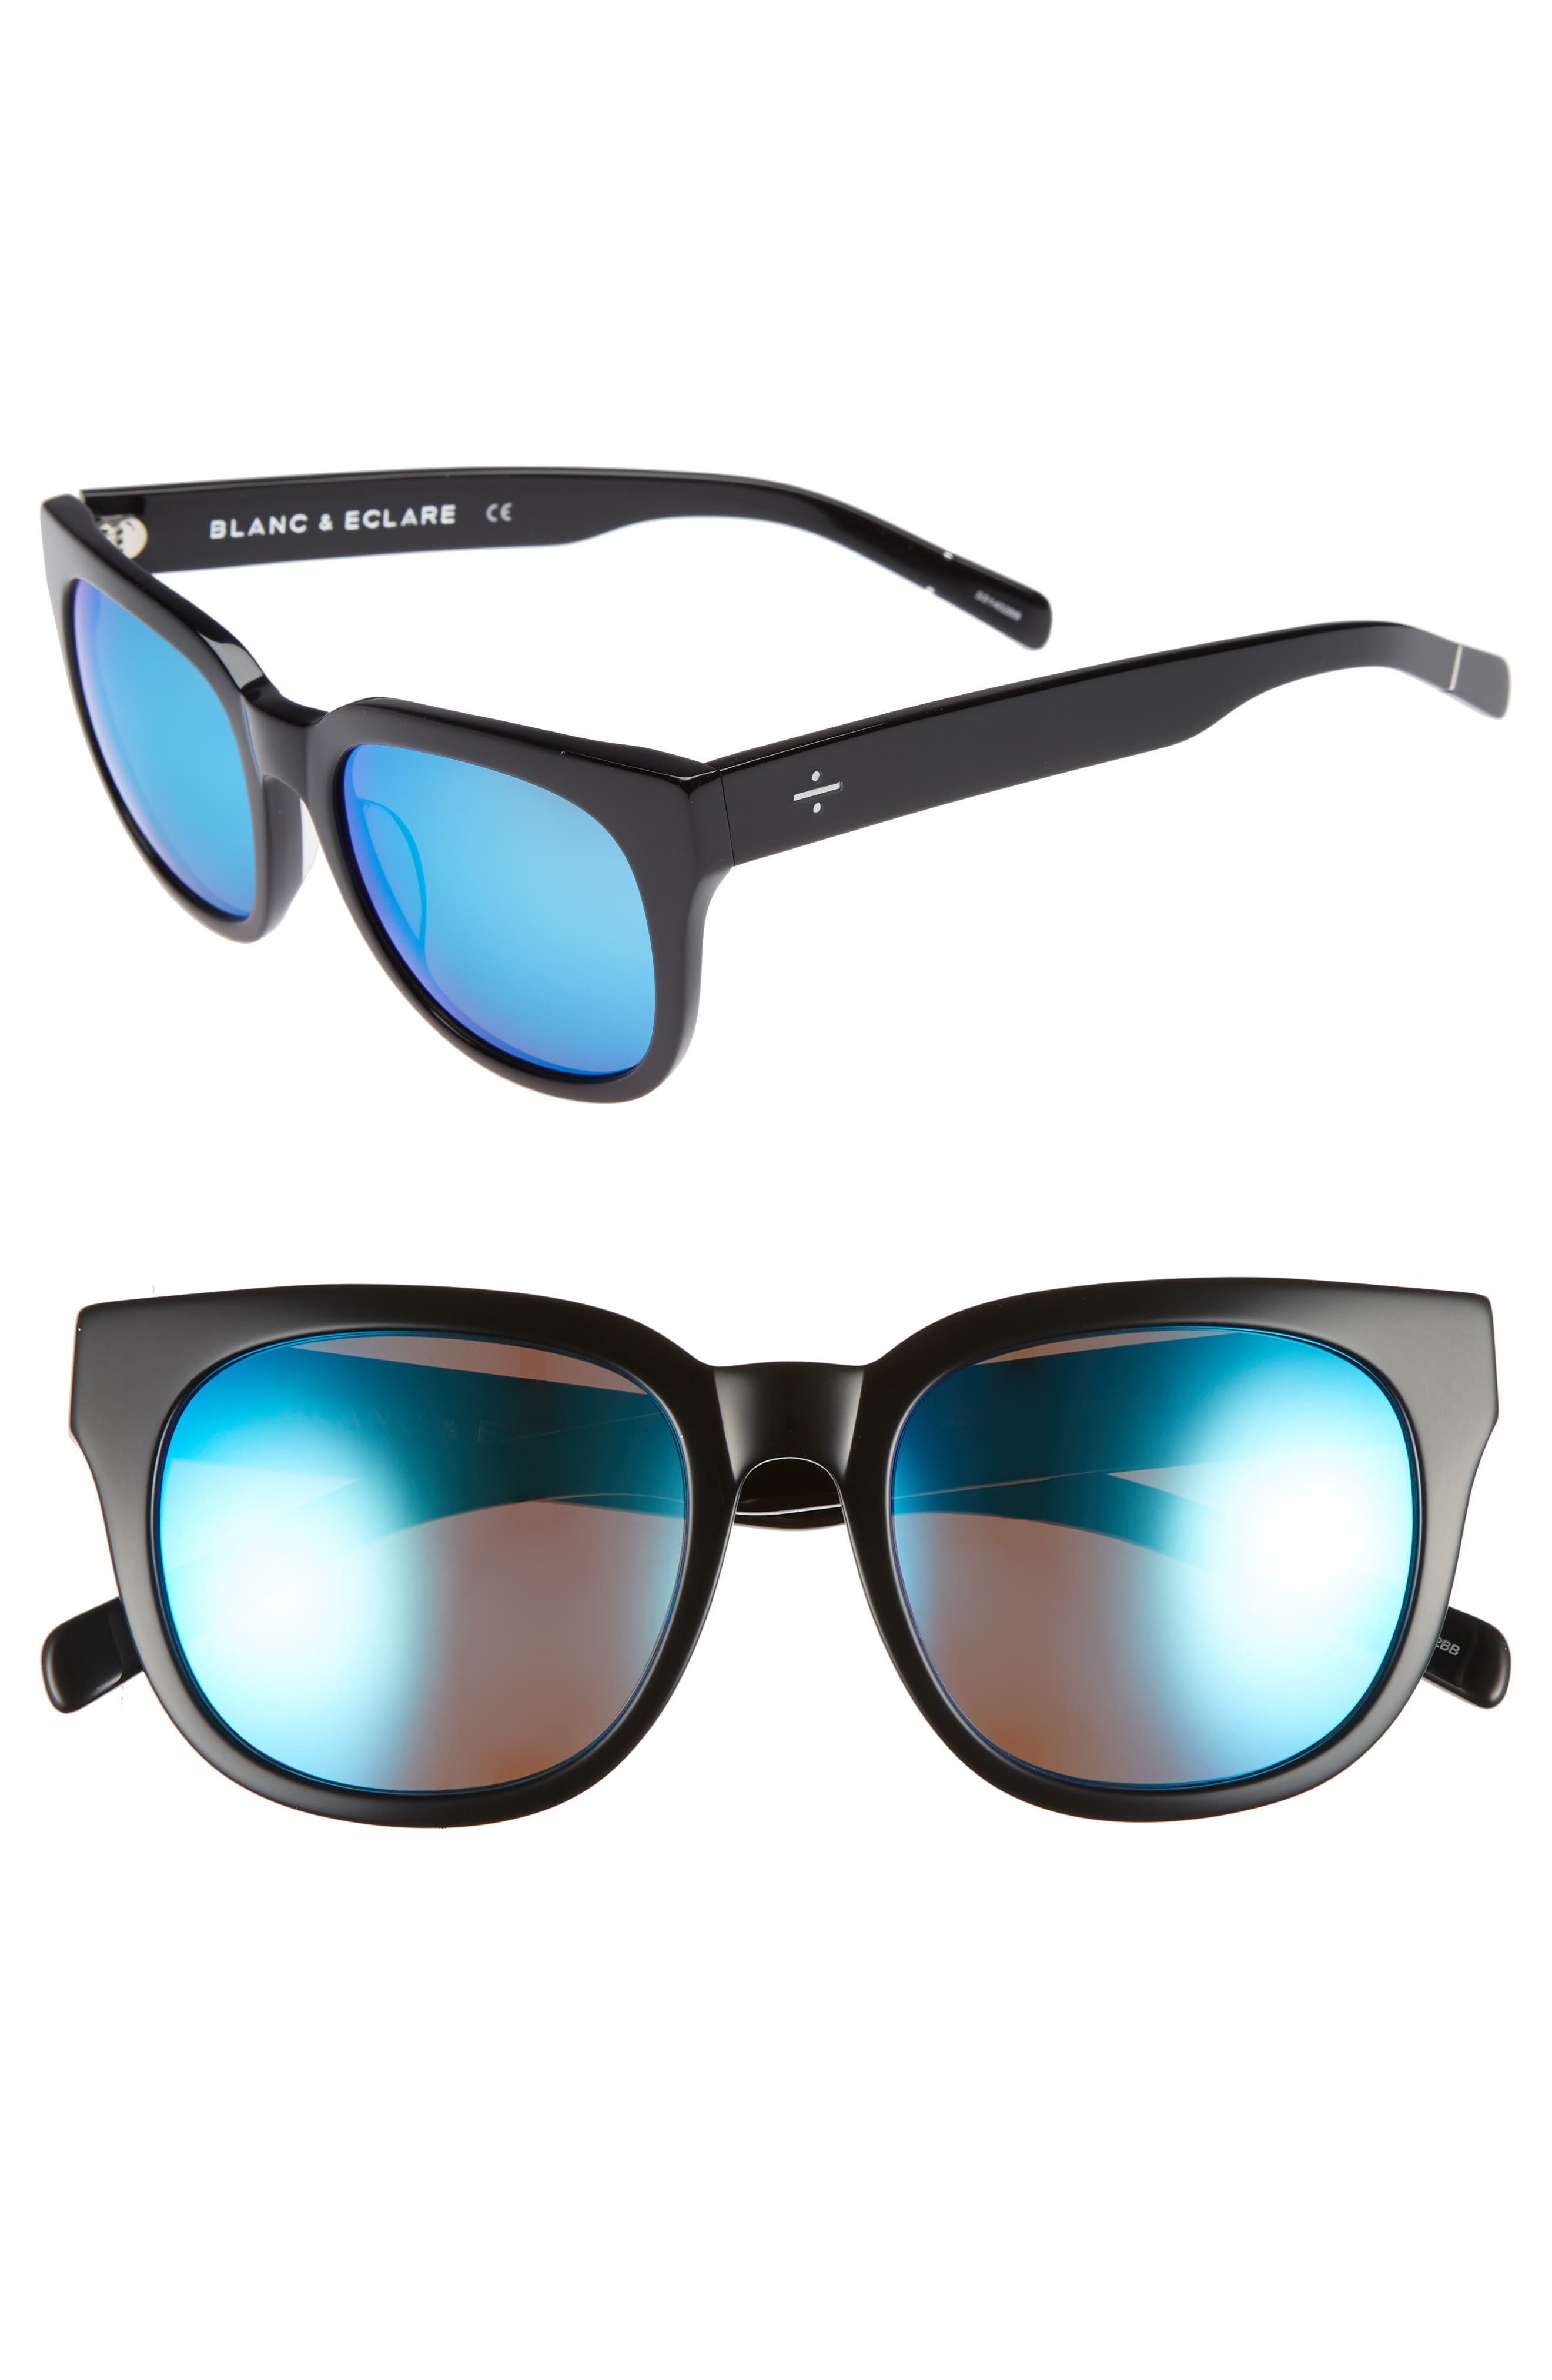 BLANC & ECLARE Seoul 55mm Polarized Sunglasses,                             Main thumbnail 1, color,                             Black/ Blue Mirror